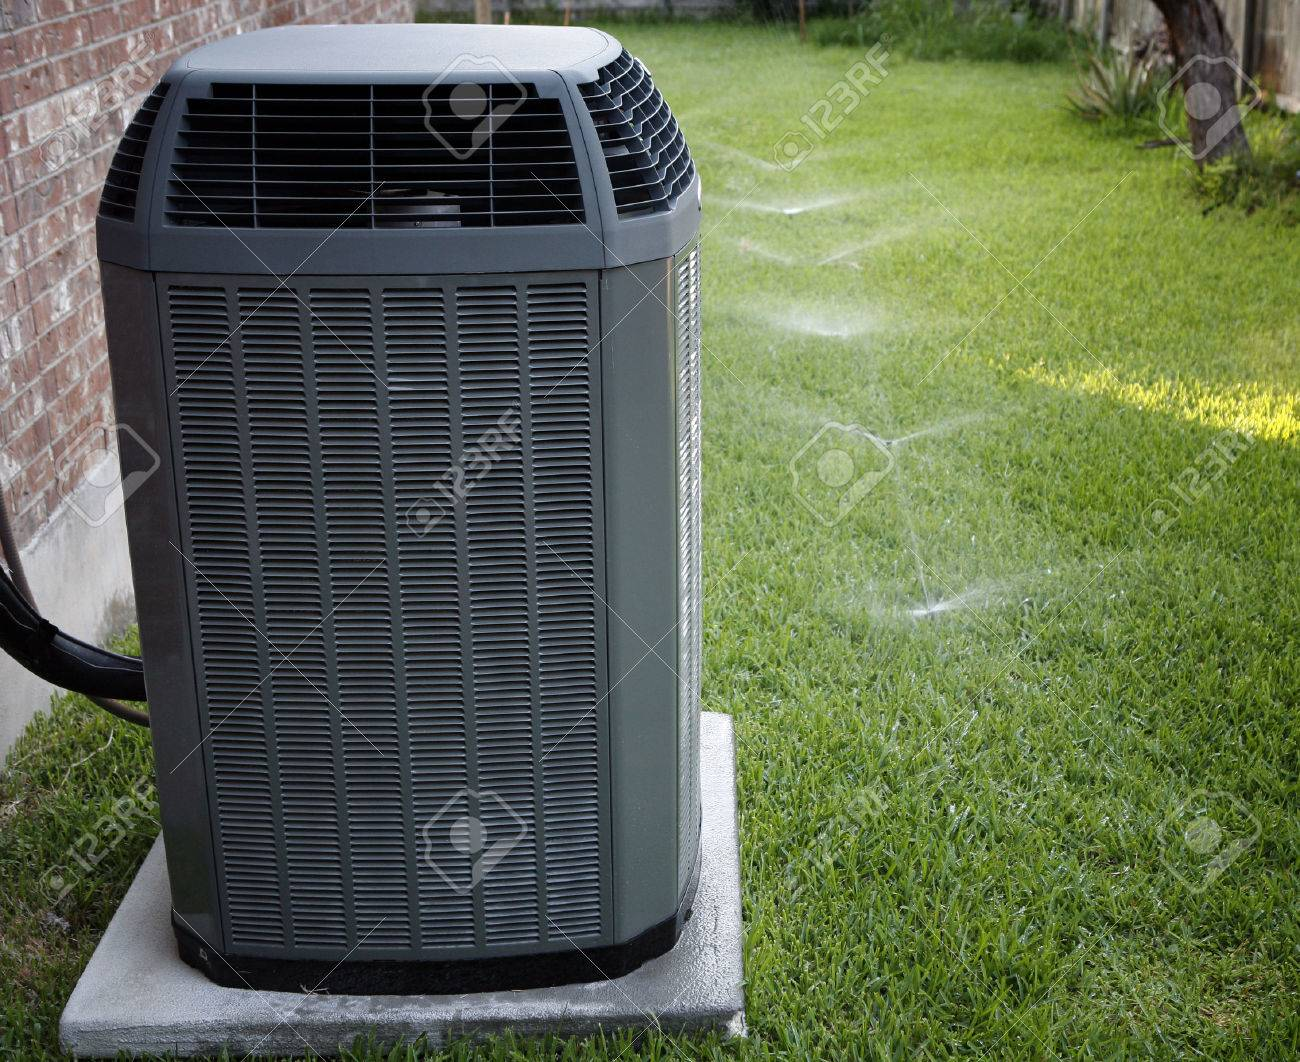 Modern air conditioner on backyard with working sprinkler system - 37539909